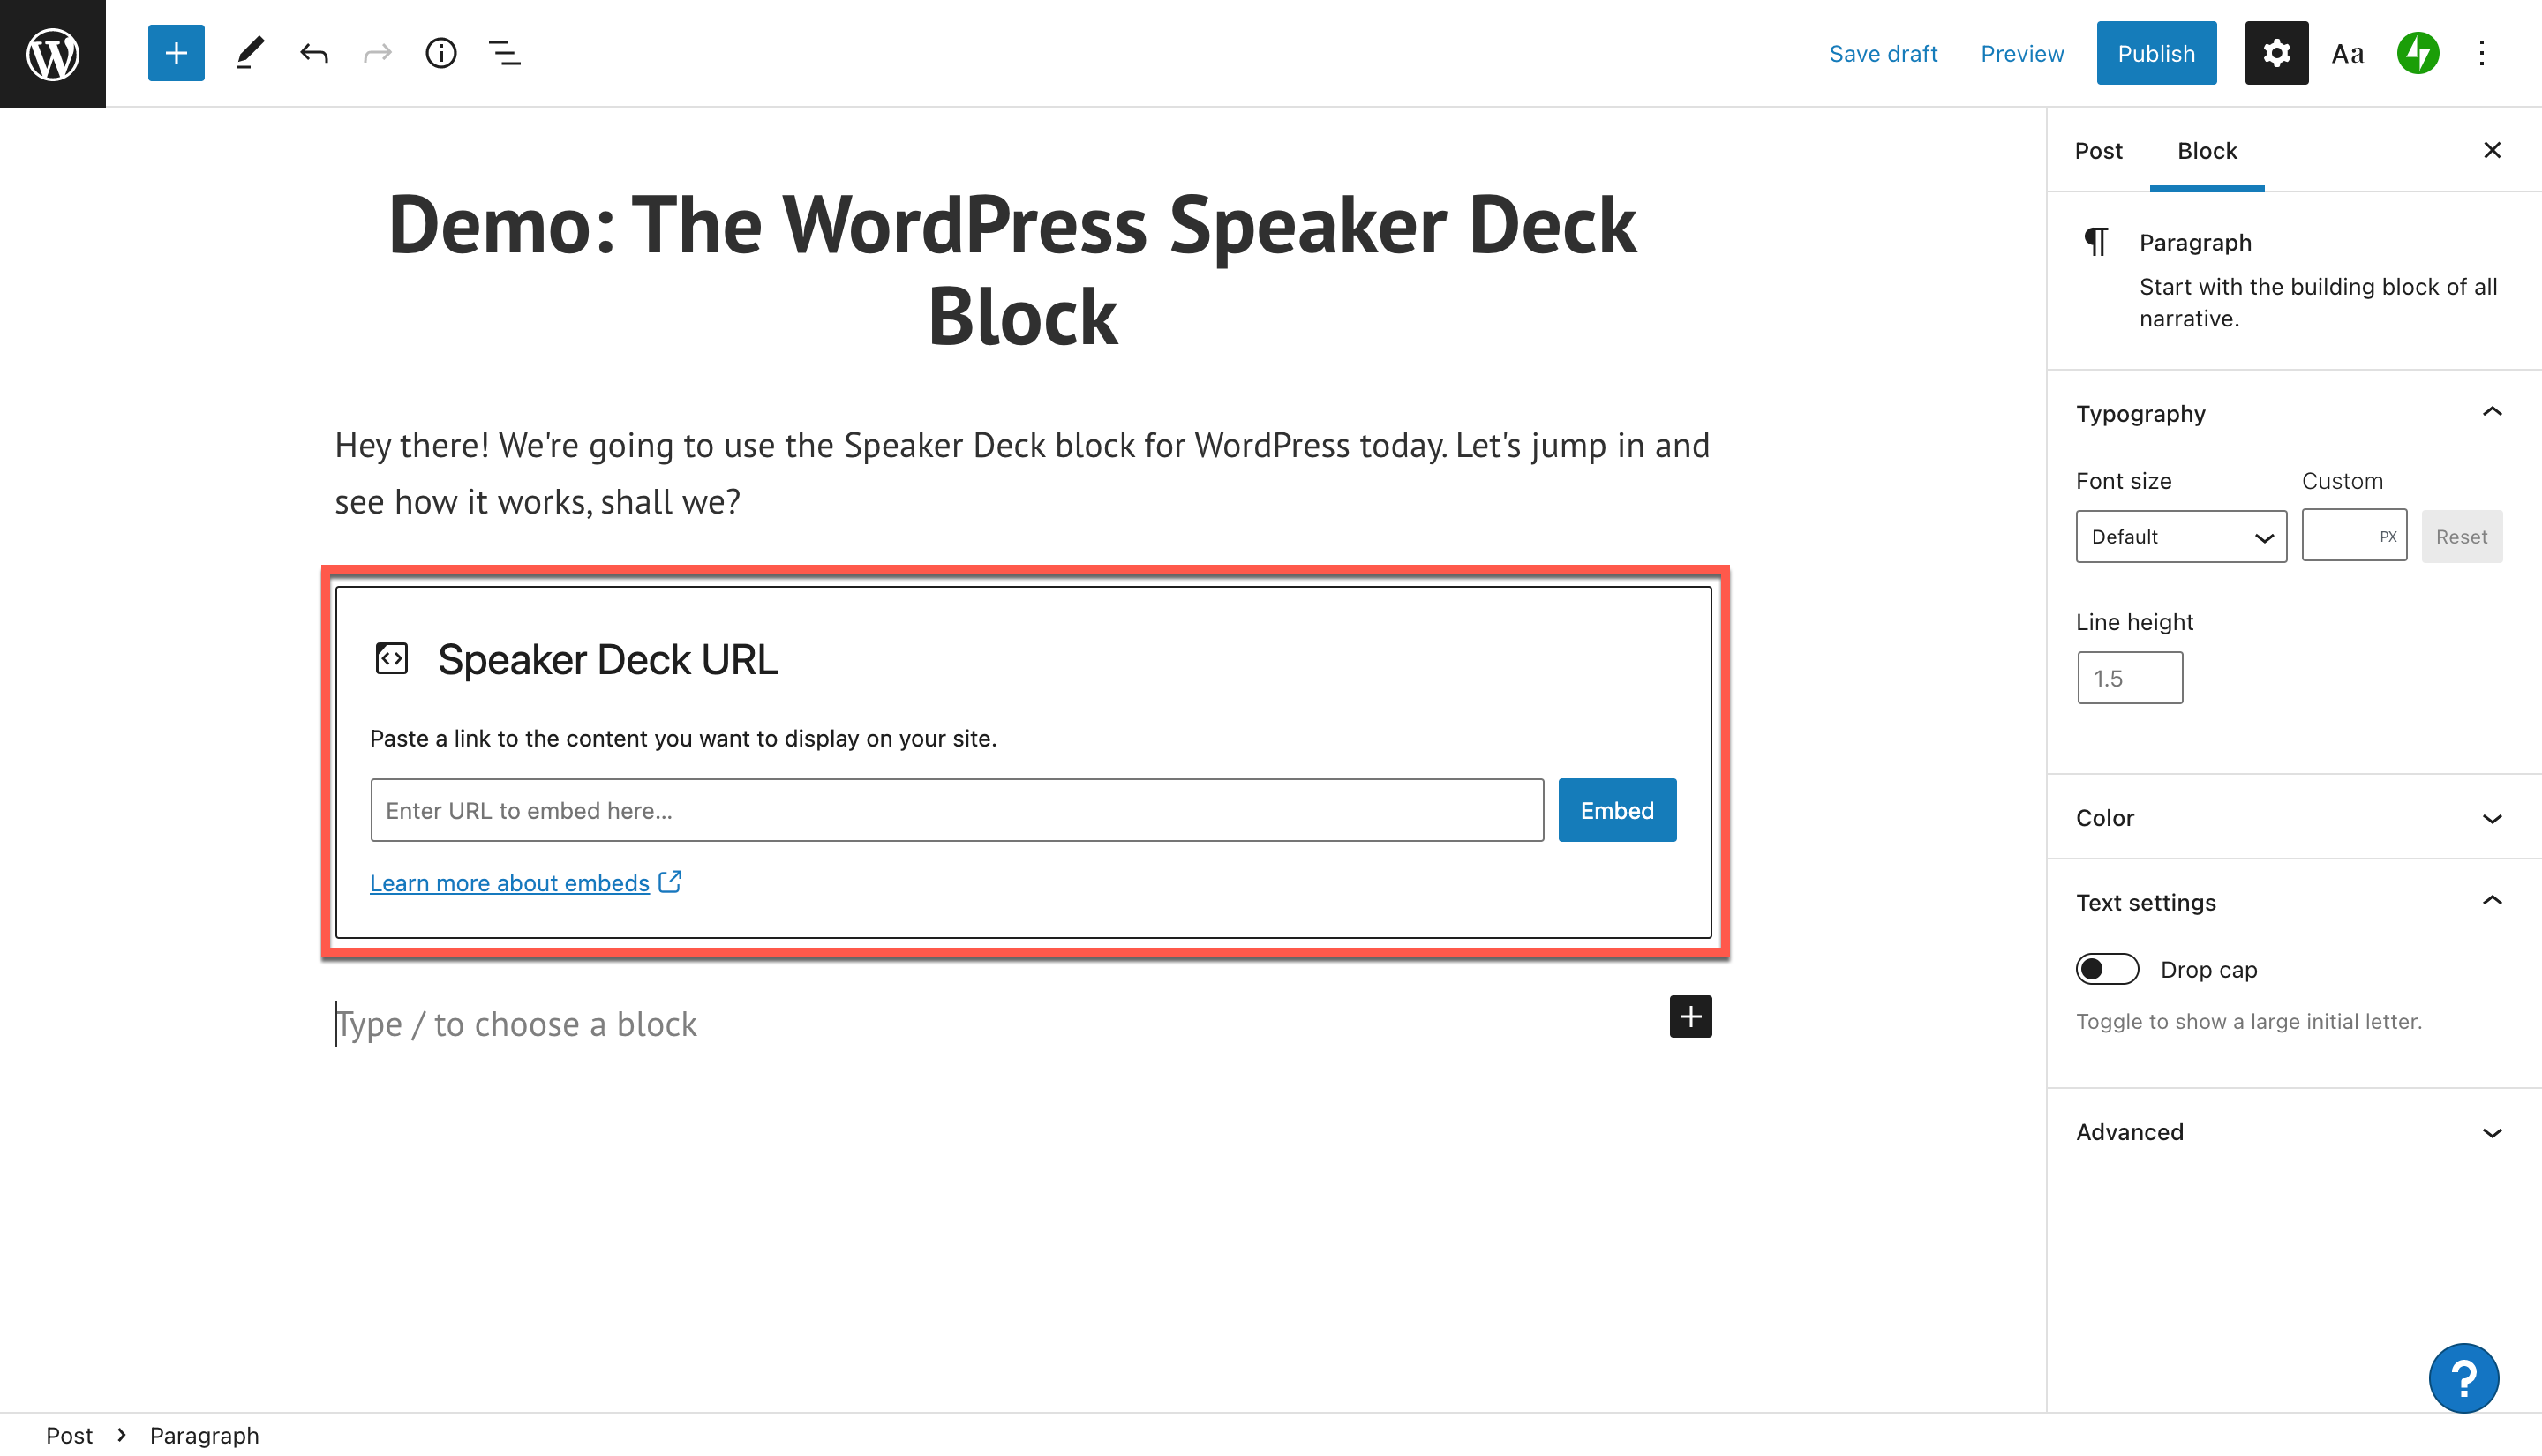 how-to-use-the-wordpress-speaker-deck-embed-block-3 如何使用 WordPress Speaker Deck 嵌入块